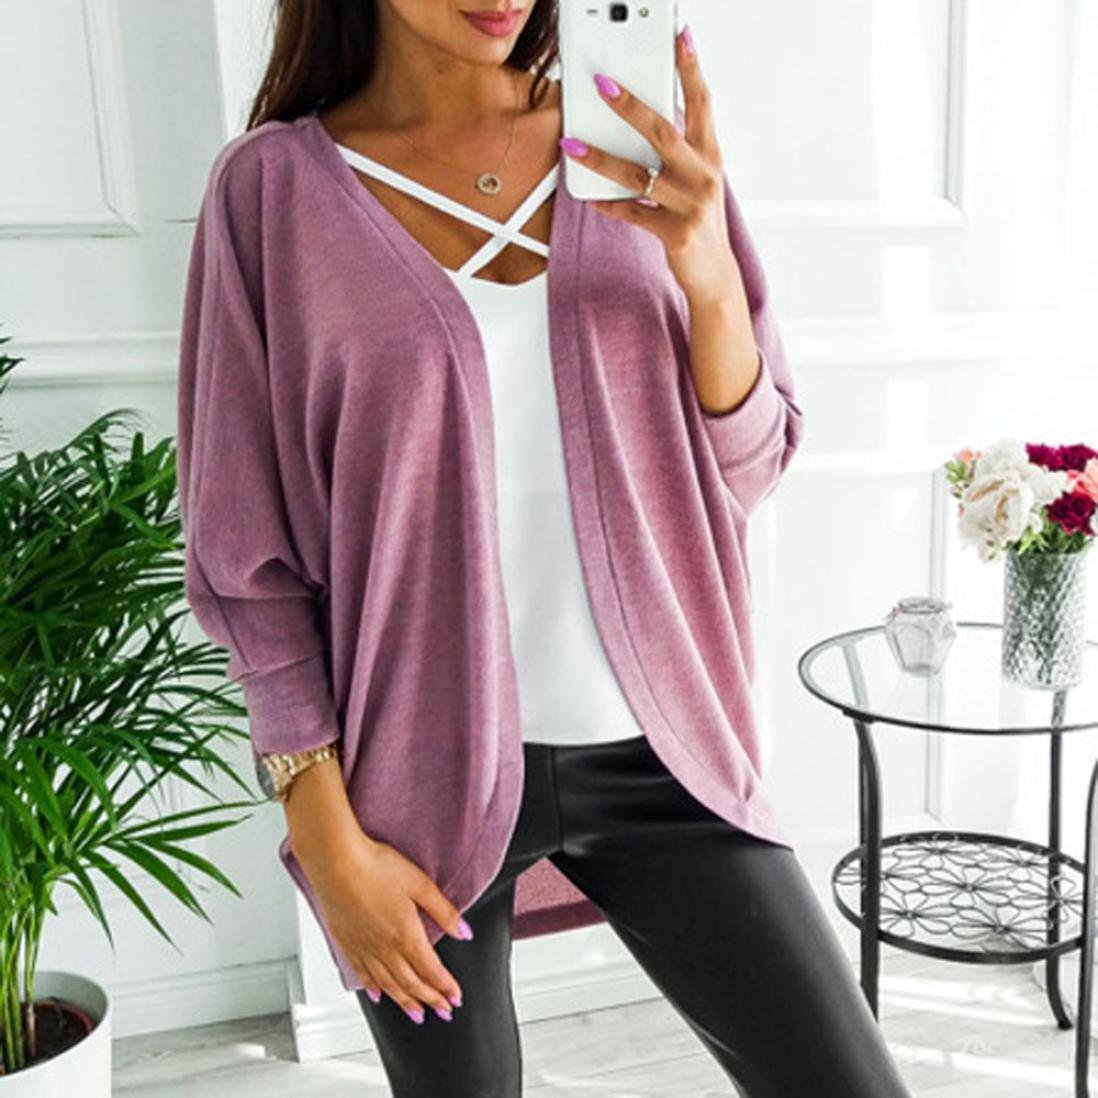 Hot Sale!Women's Cardigans Neartime Womens Kintted Cardigan Asymmetric Sweater Hem Long Sleeve Coat Tops (L, Pink) by NEARTIME (Image #4)